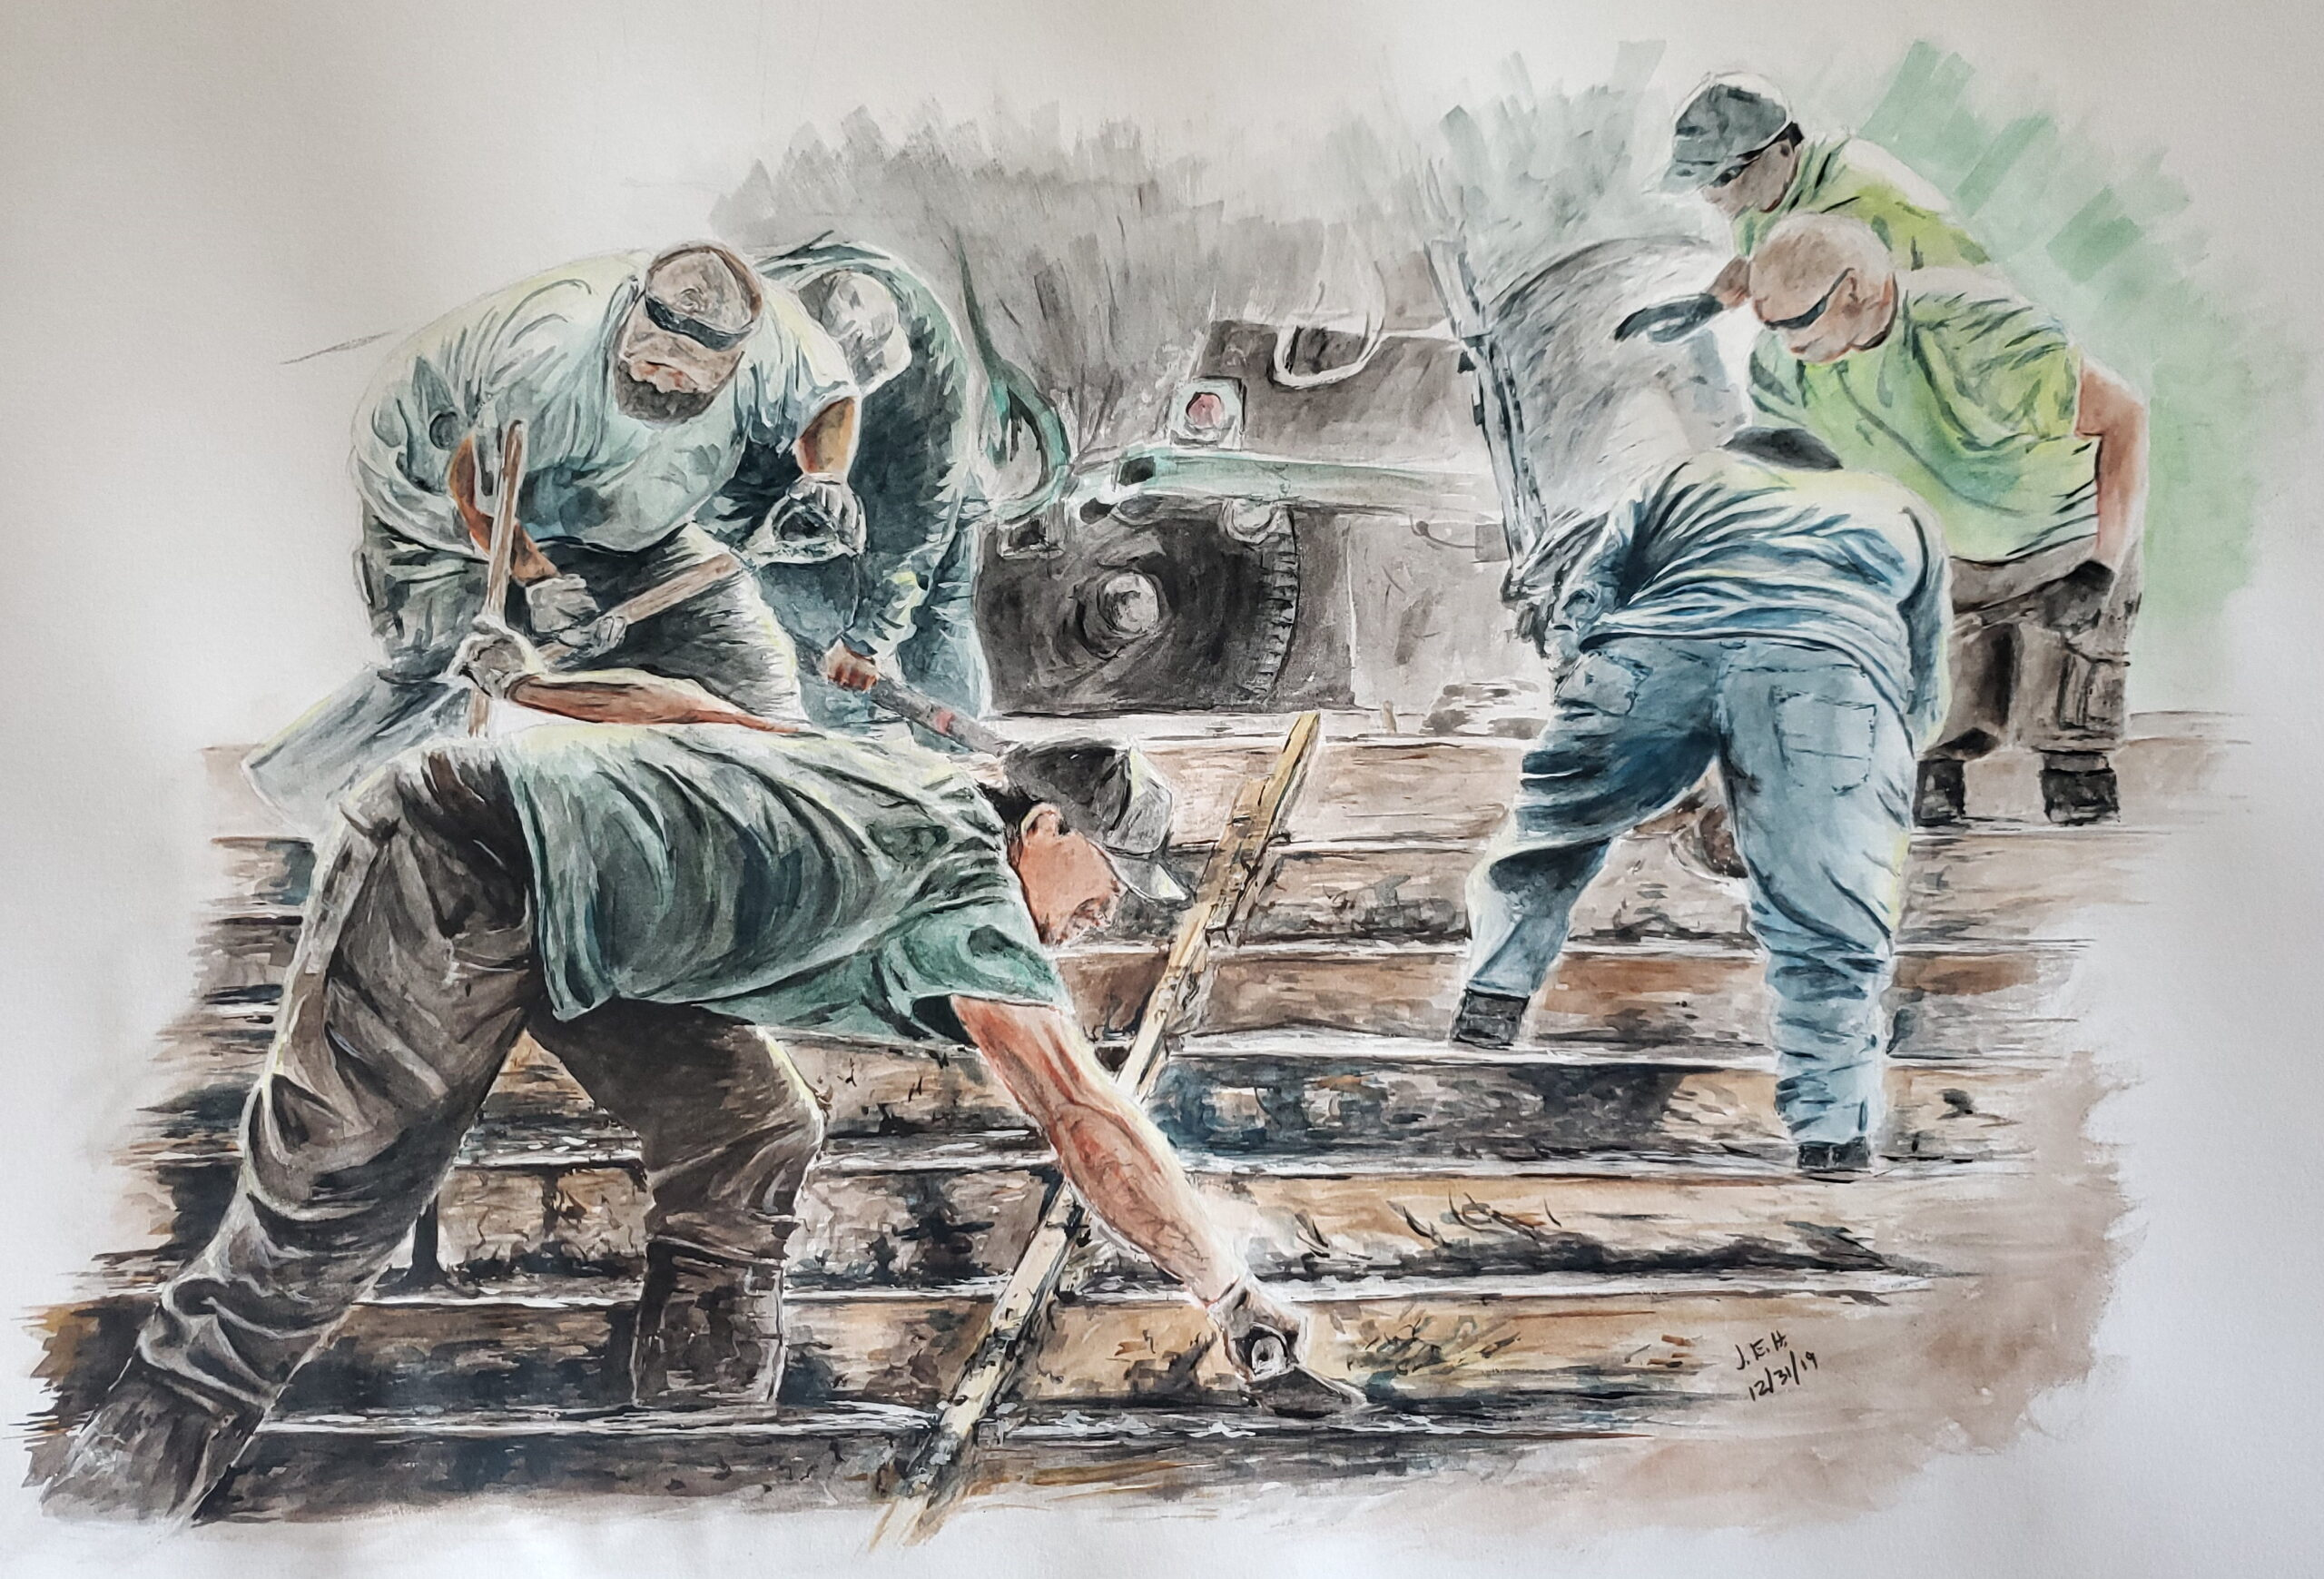 Water color sketch by John Huisman